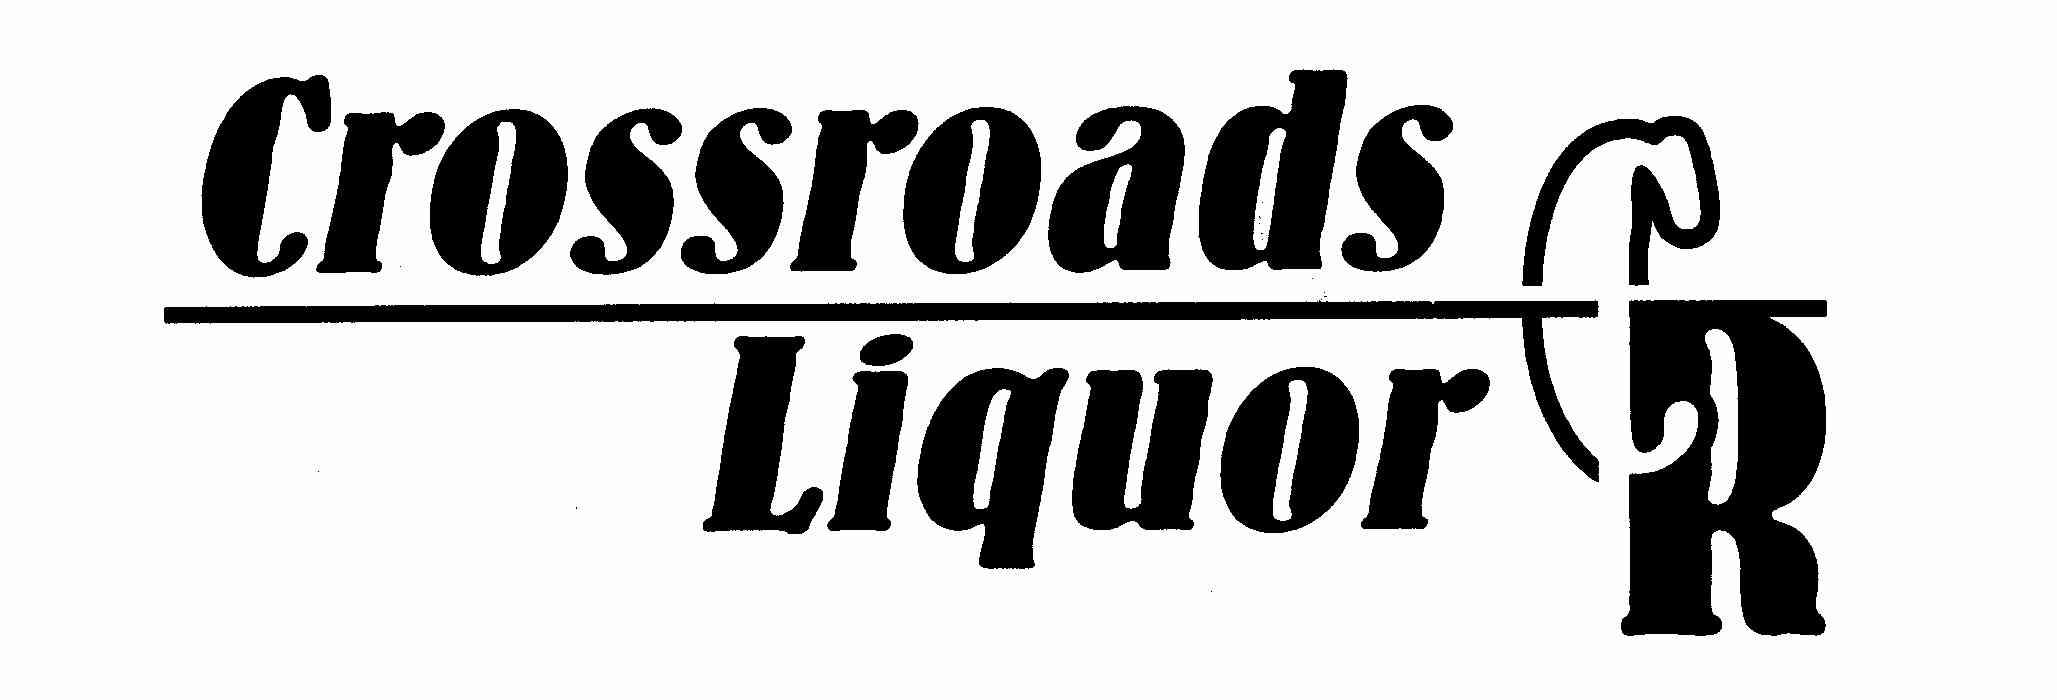 Crossroads Liquor 